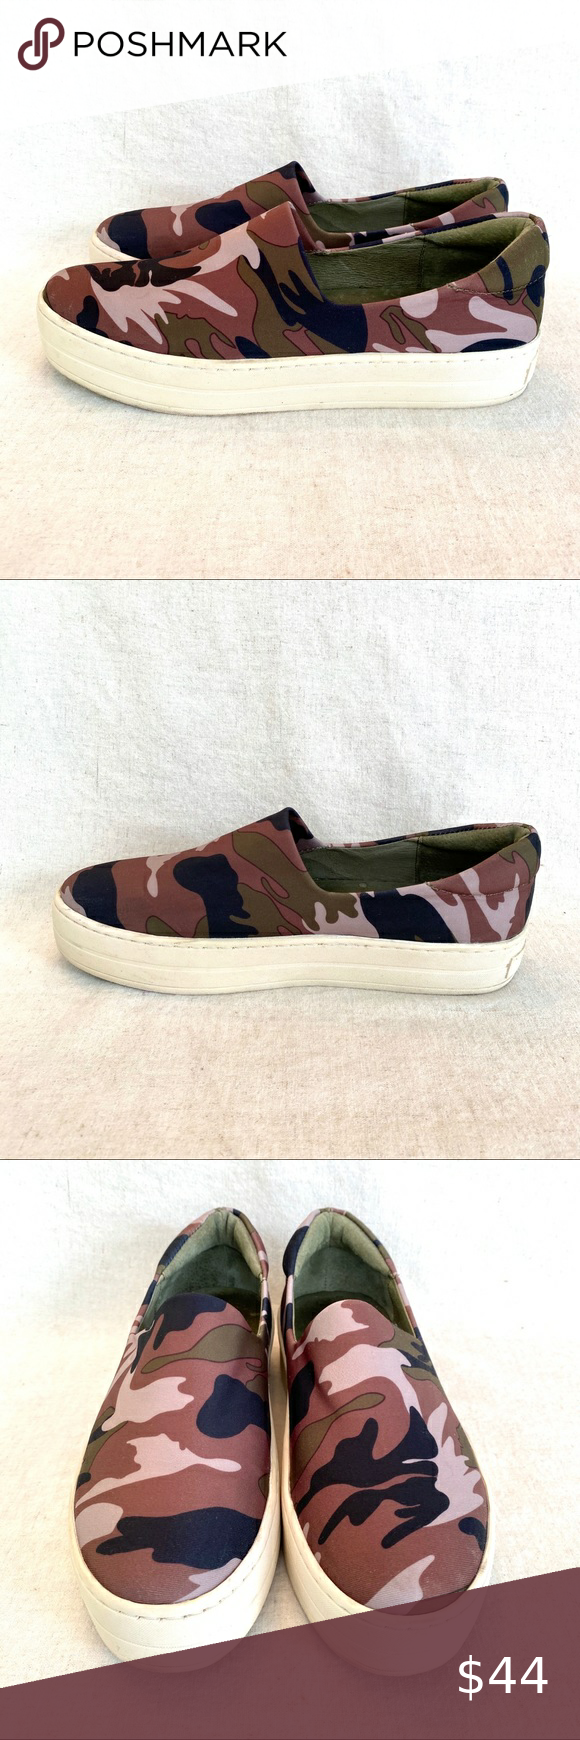 J Slides Camo Stretch Slip On Platform Sneaker 9 In 2020 Platform Sneakers Sneakers Vans Classic Slip On Sneaker